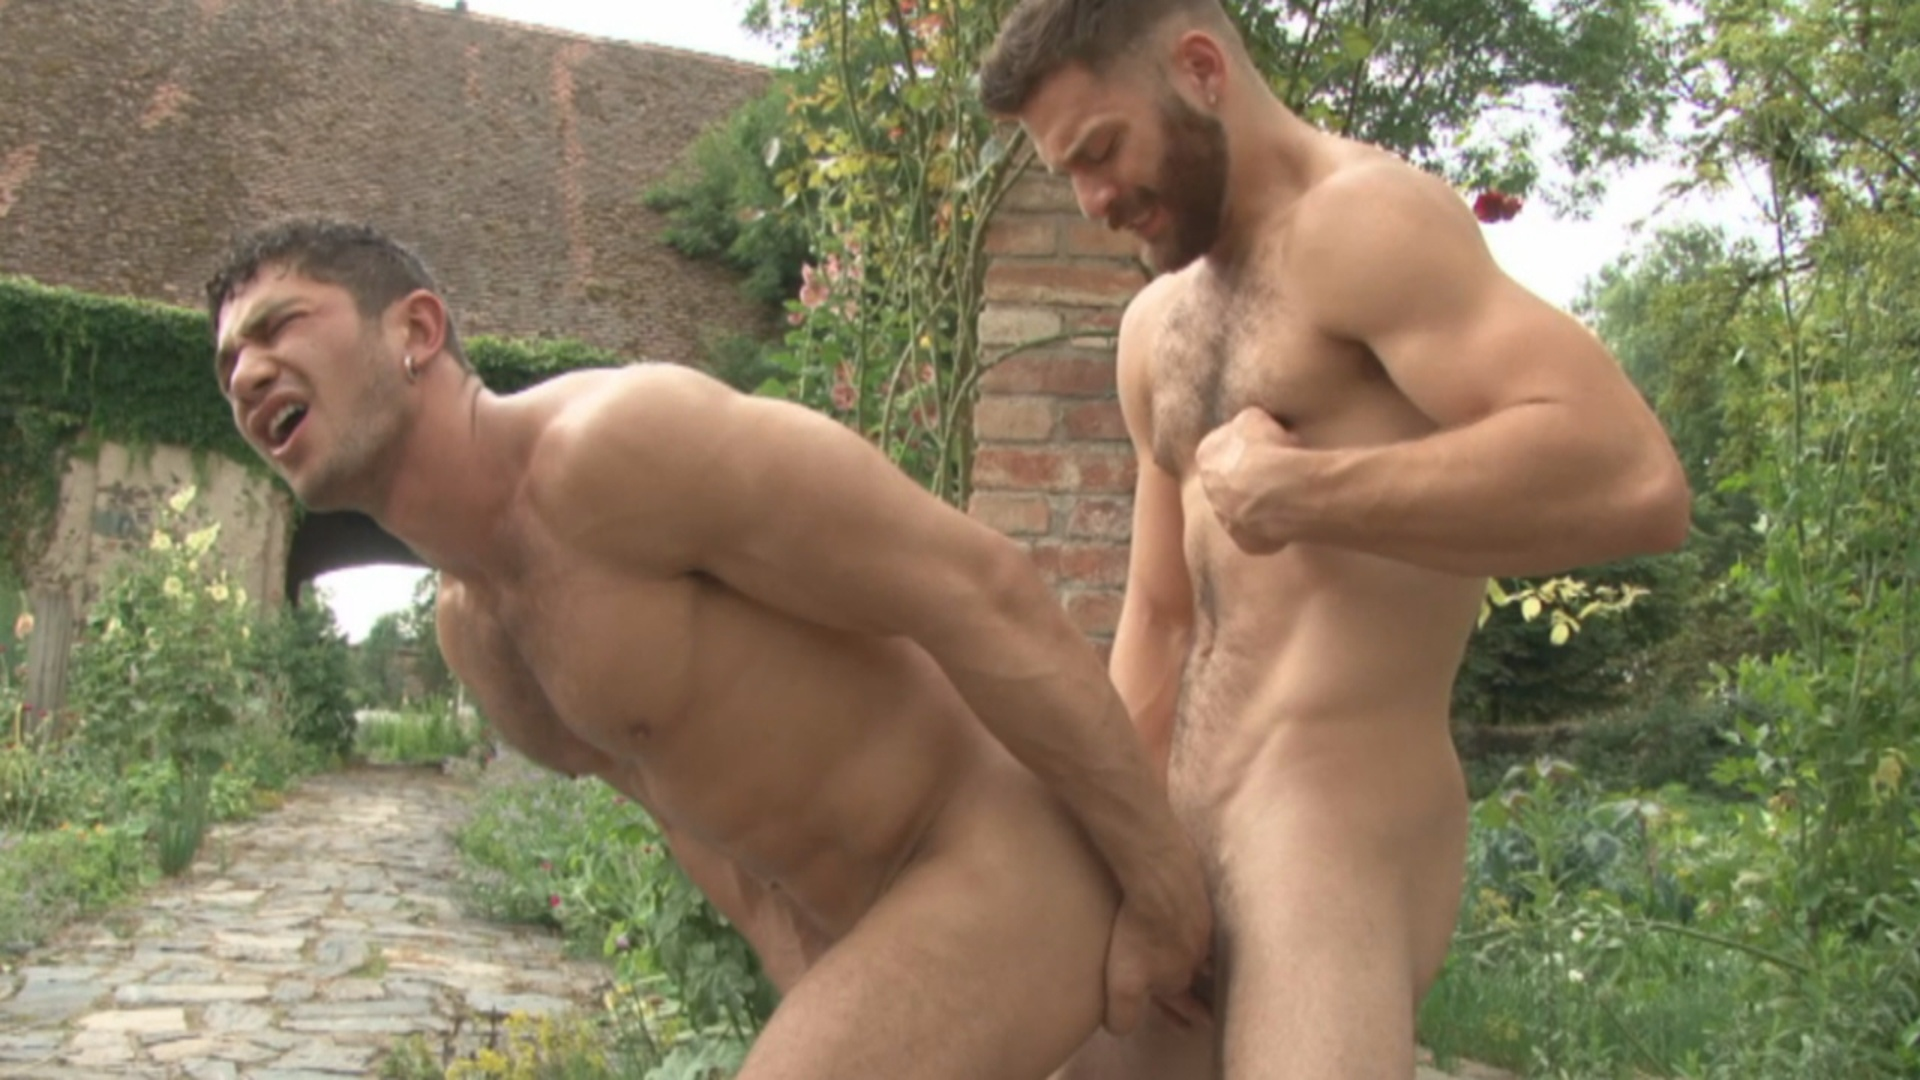 Dirty Rascals Episode 1: Trouble At The Chateau Xvideo gay